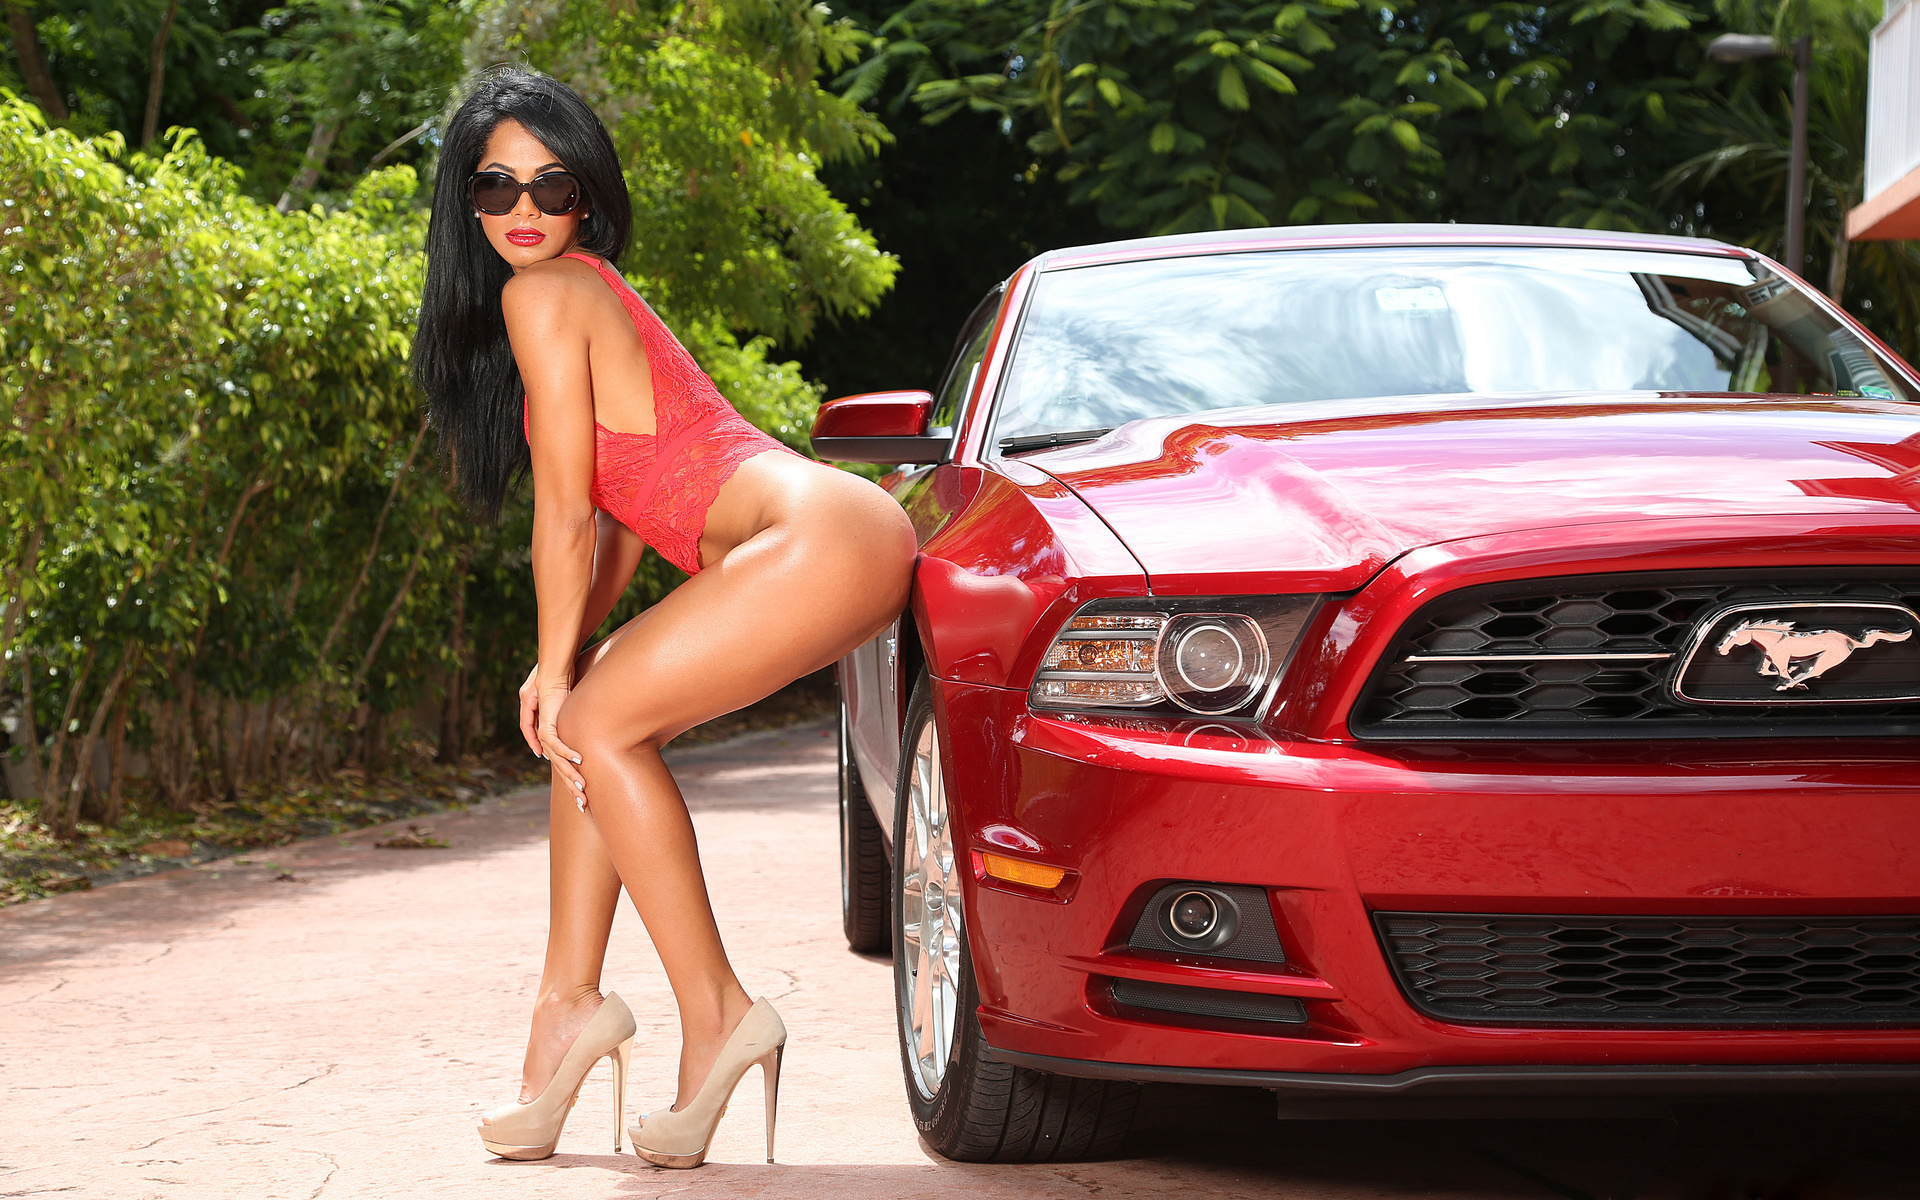 free-nude-girls-with-mustang-cars-sex-drunk-orgie